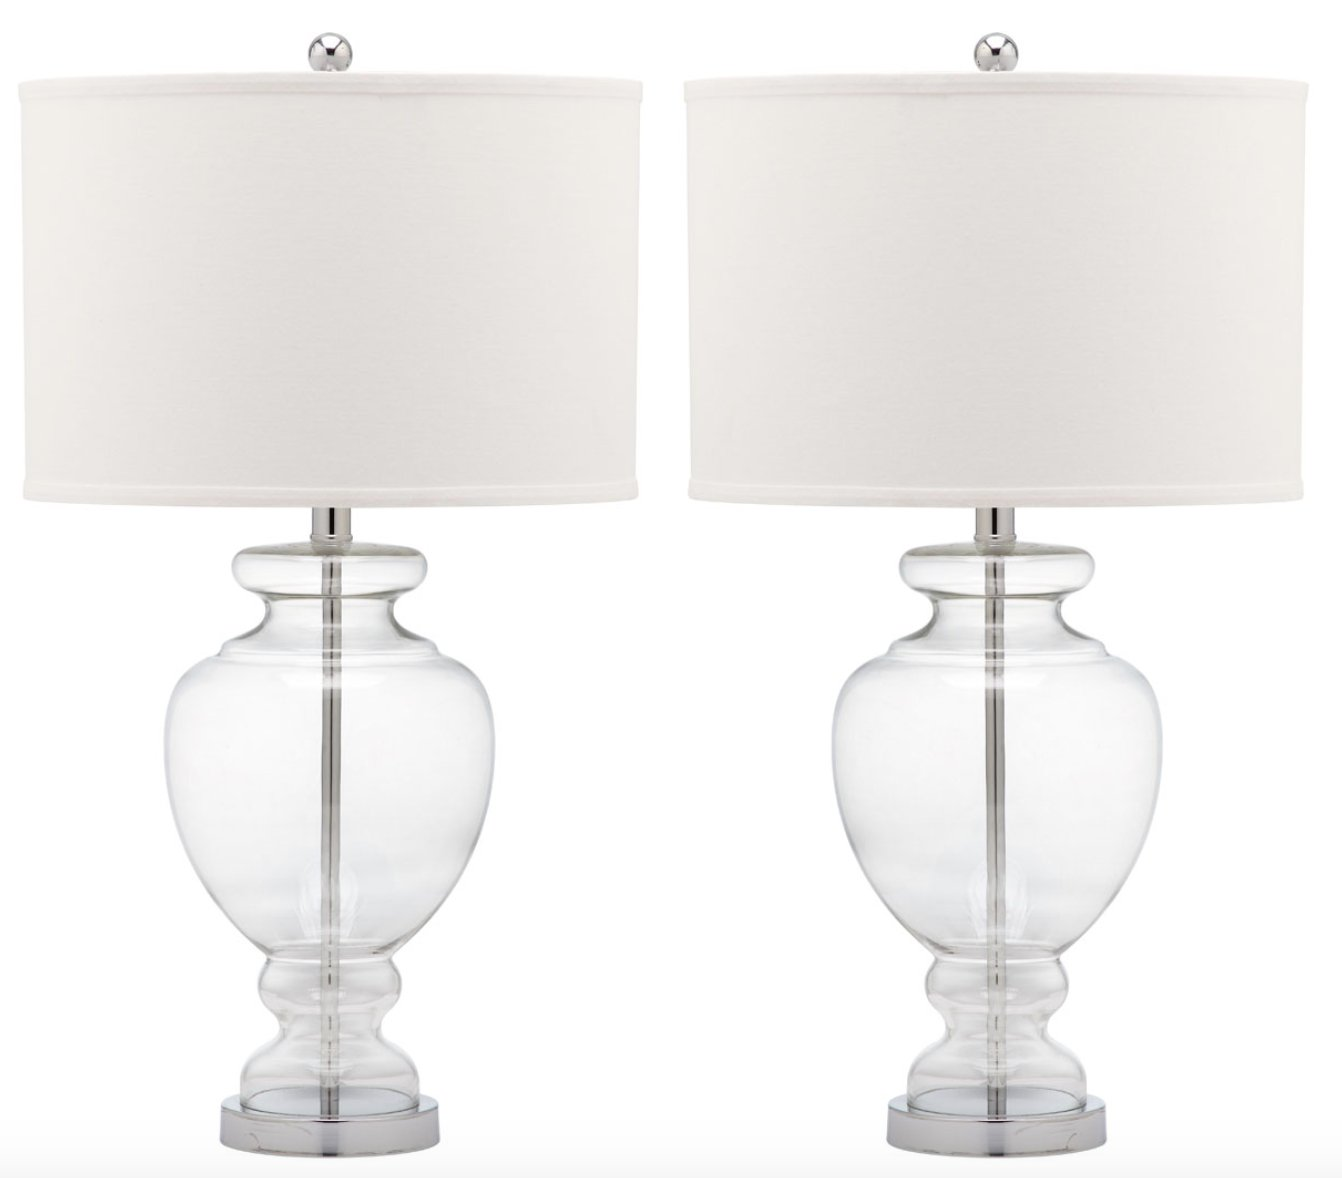 CLEAR GLASS TABLE LAMP / Set of 2